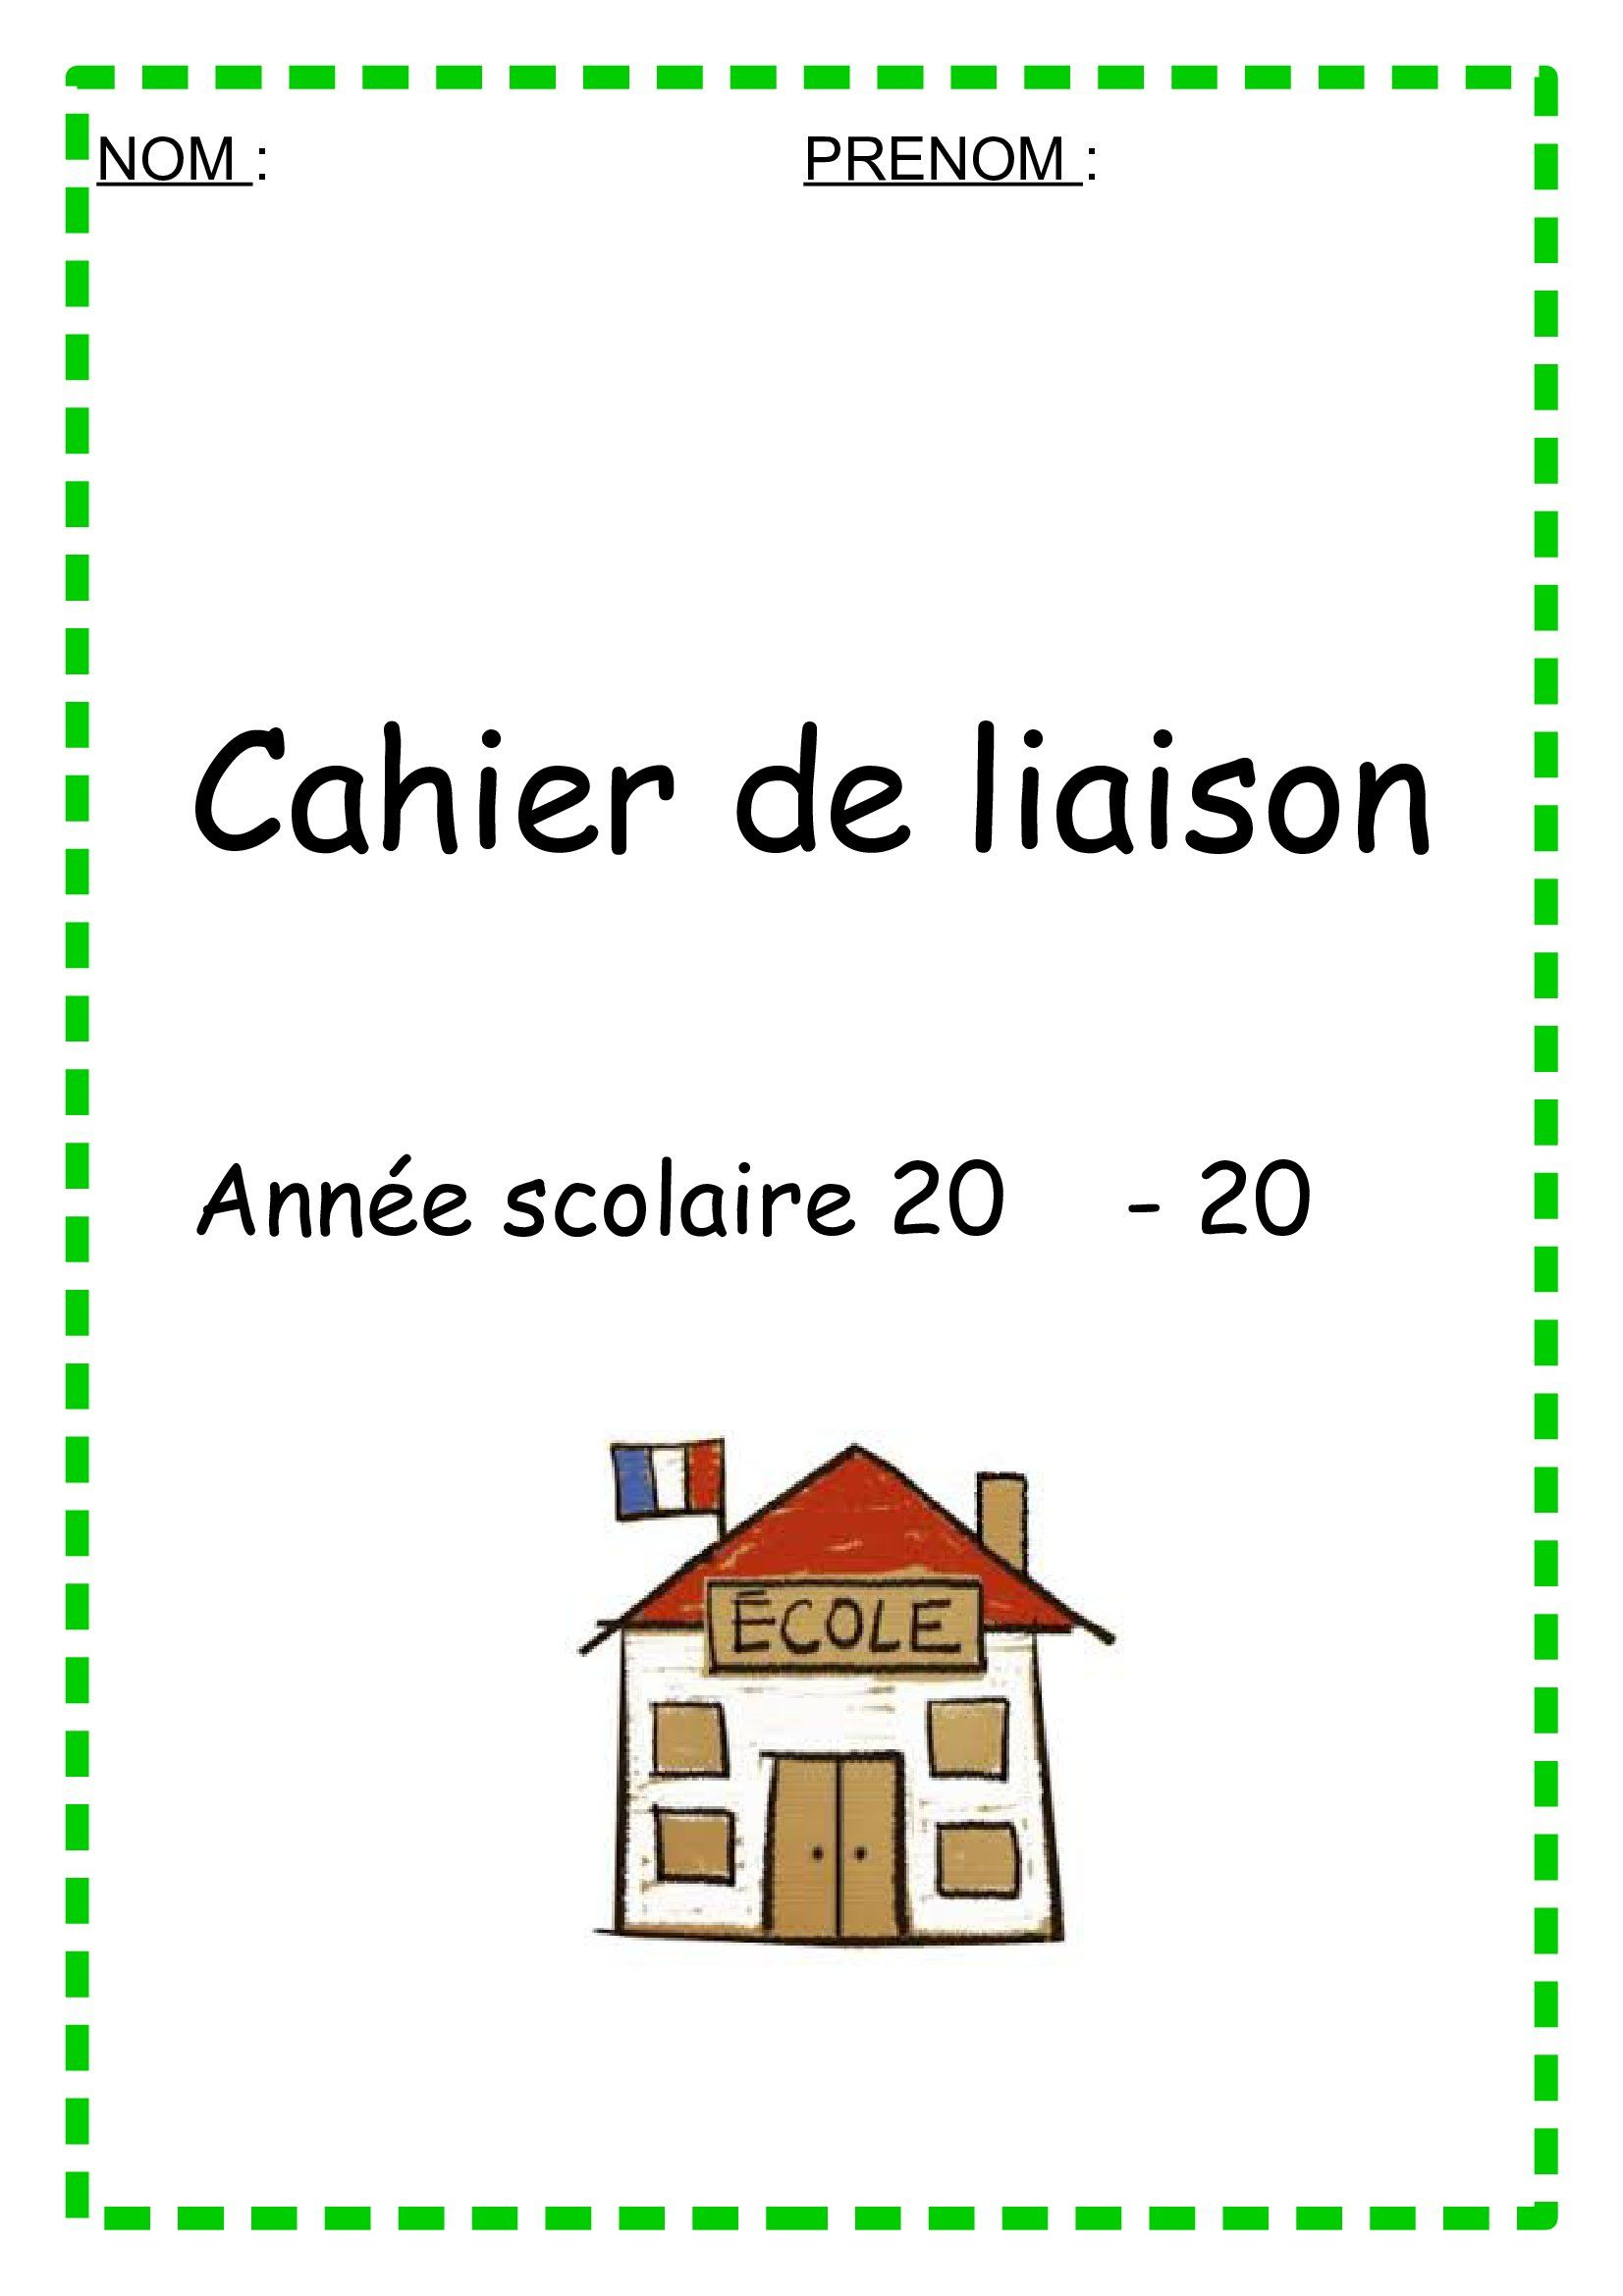 page de garde cahier de liaison ecole pinterest cahier de liaison page de garde et cahier. Black Bedroom Furniture Sets. Home Design Ideas